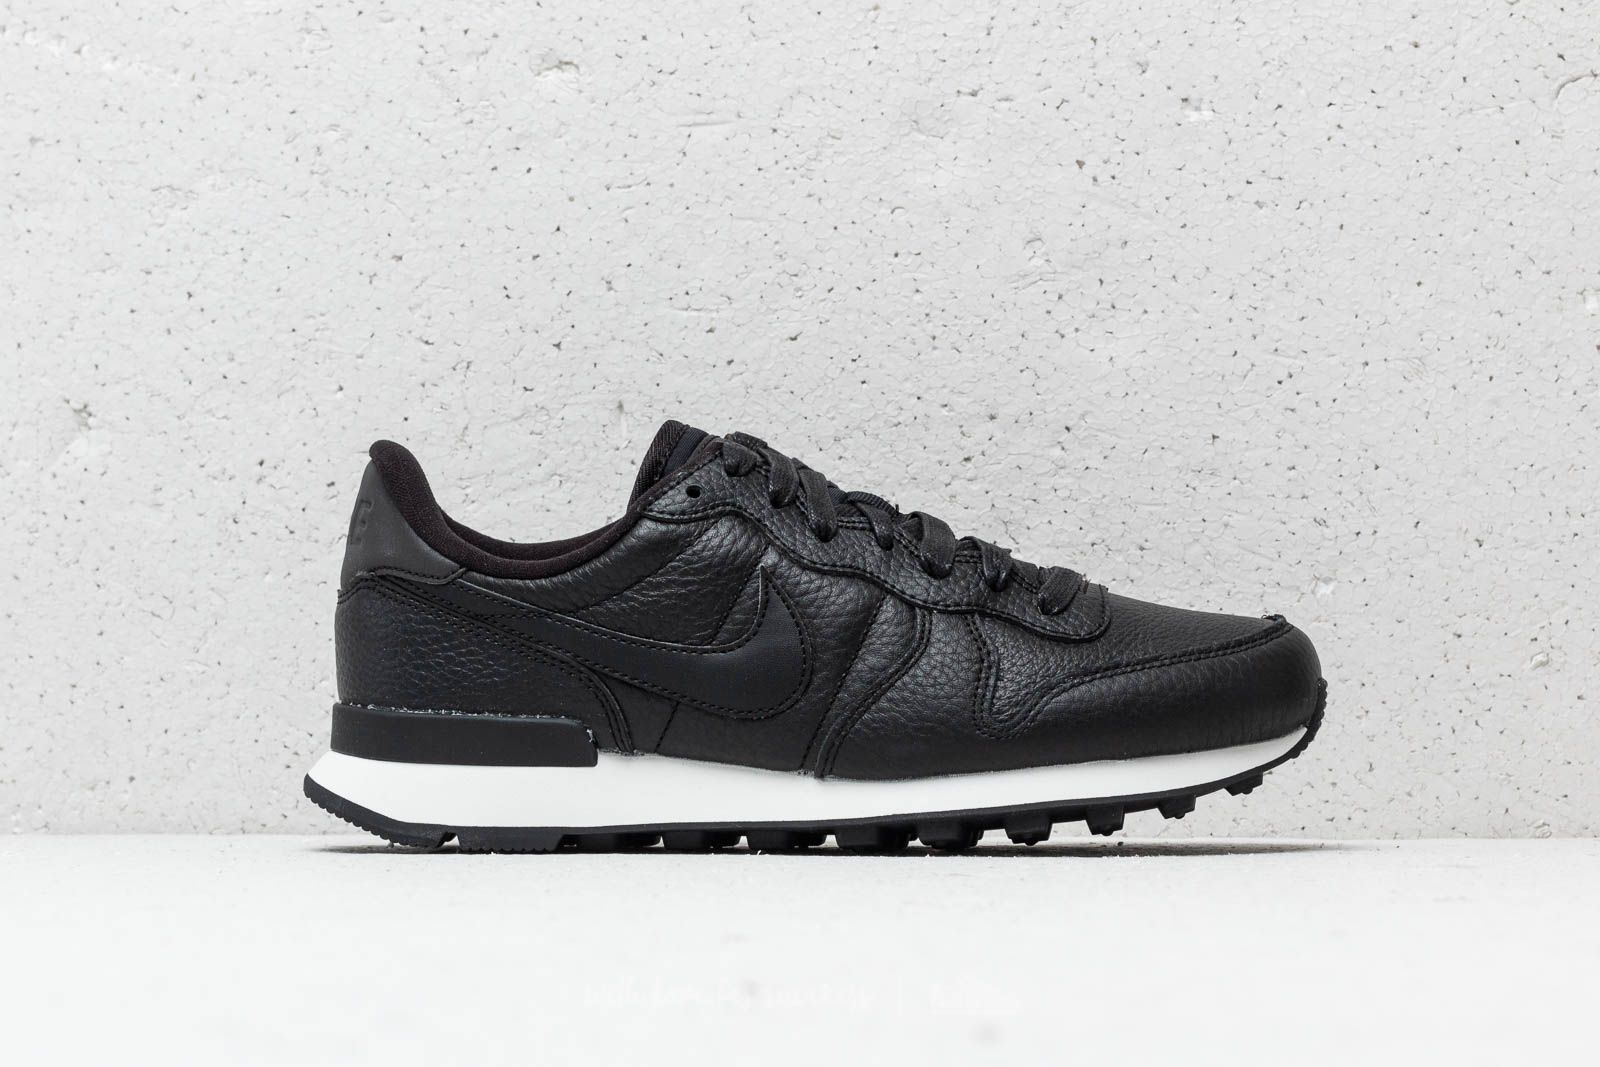 watch cfecf db9e0 closeout nike internationalist prm black anthracite dcd9b 1cb07  promo code  for nike w internationalist premium black black summit white at a great  price 99